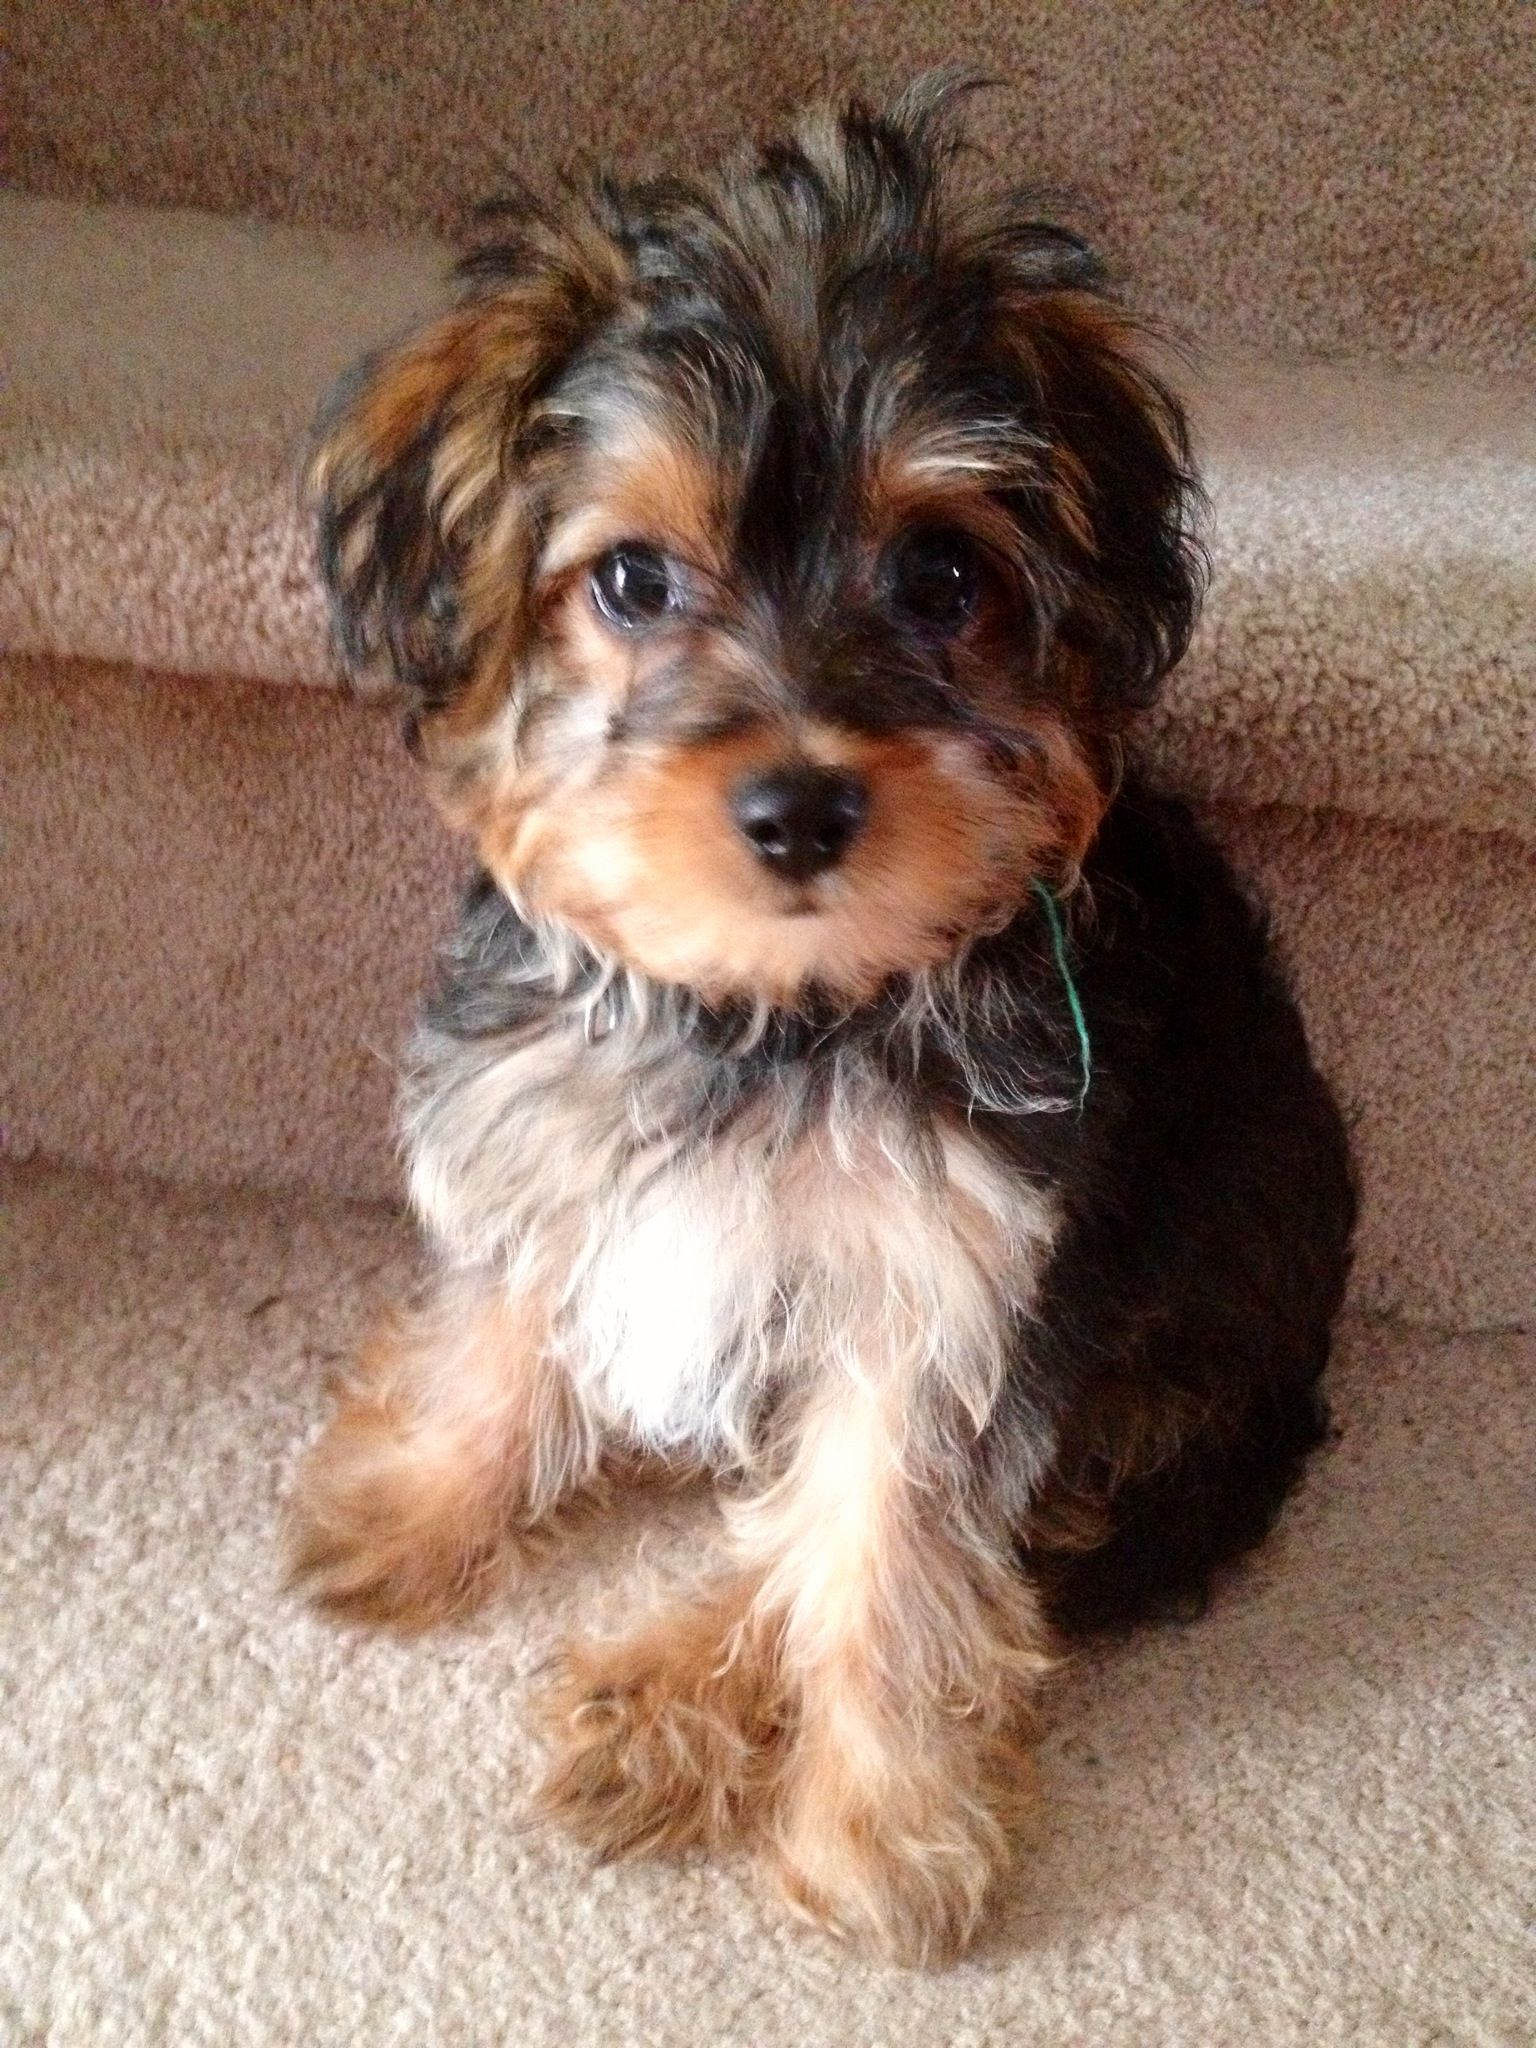 yorkiepoo. hands down, one of my favorite breeds